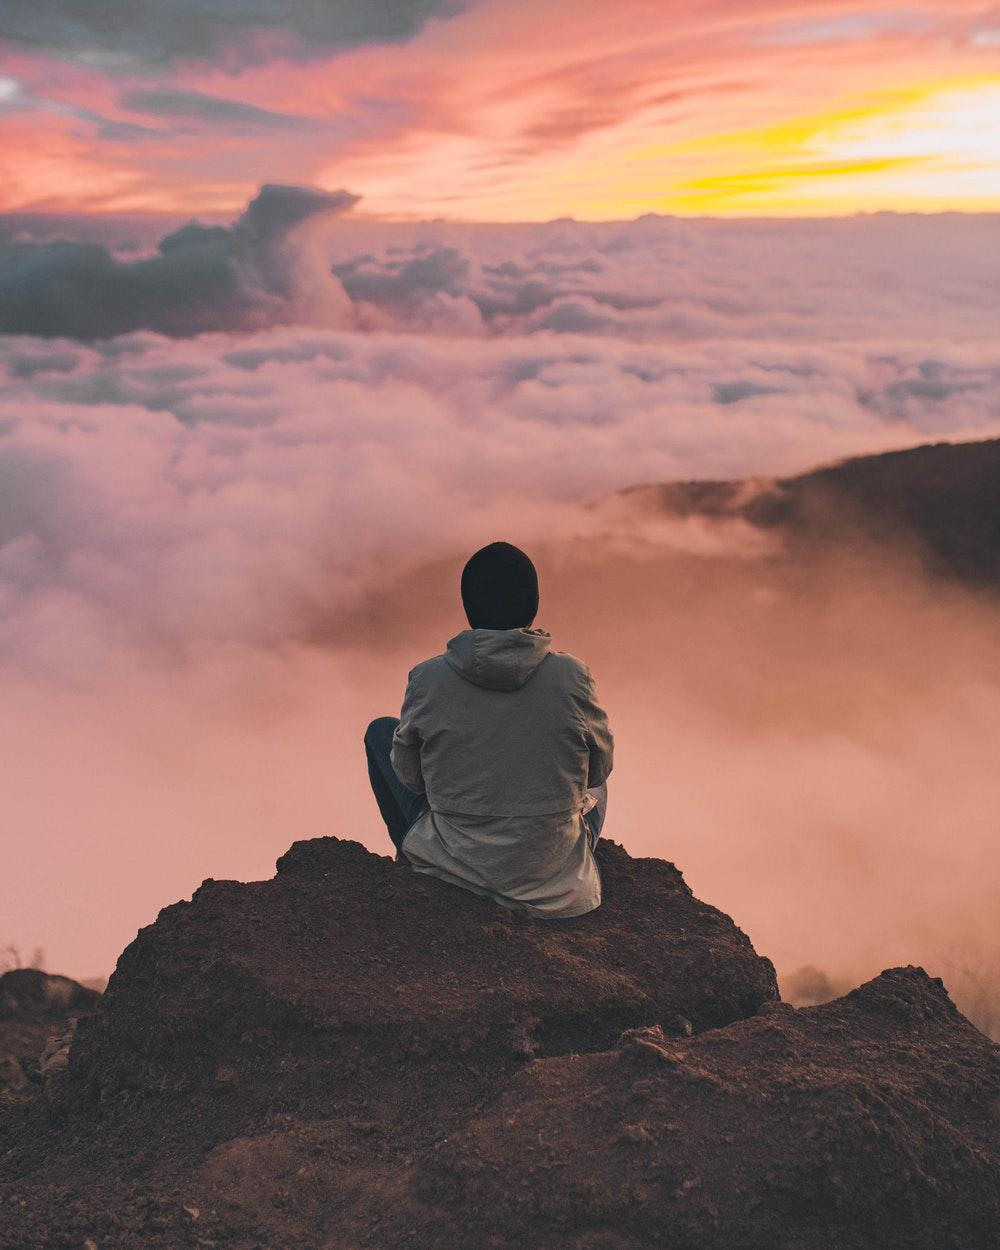 Forgiveness: The Path to Embracing My Lion Heart by Laura Bishop. Photograph of man on cliff looking over clouds and sunset by Ian Stauffer